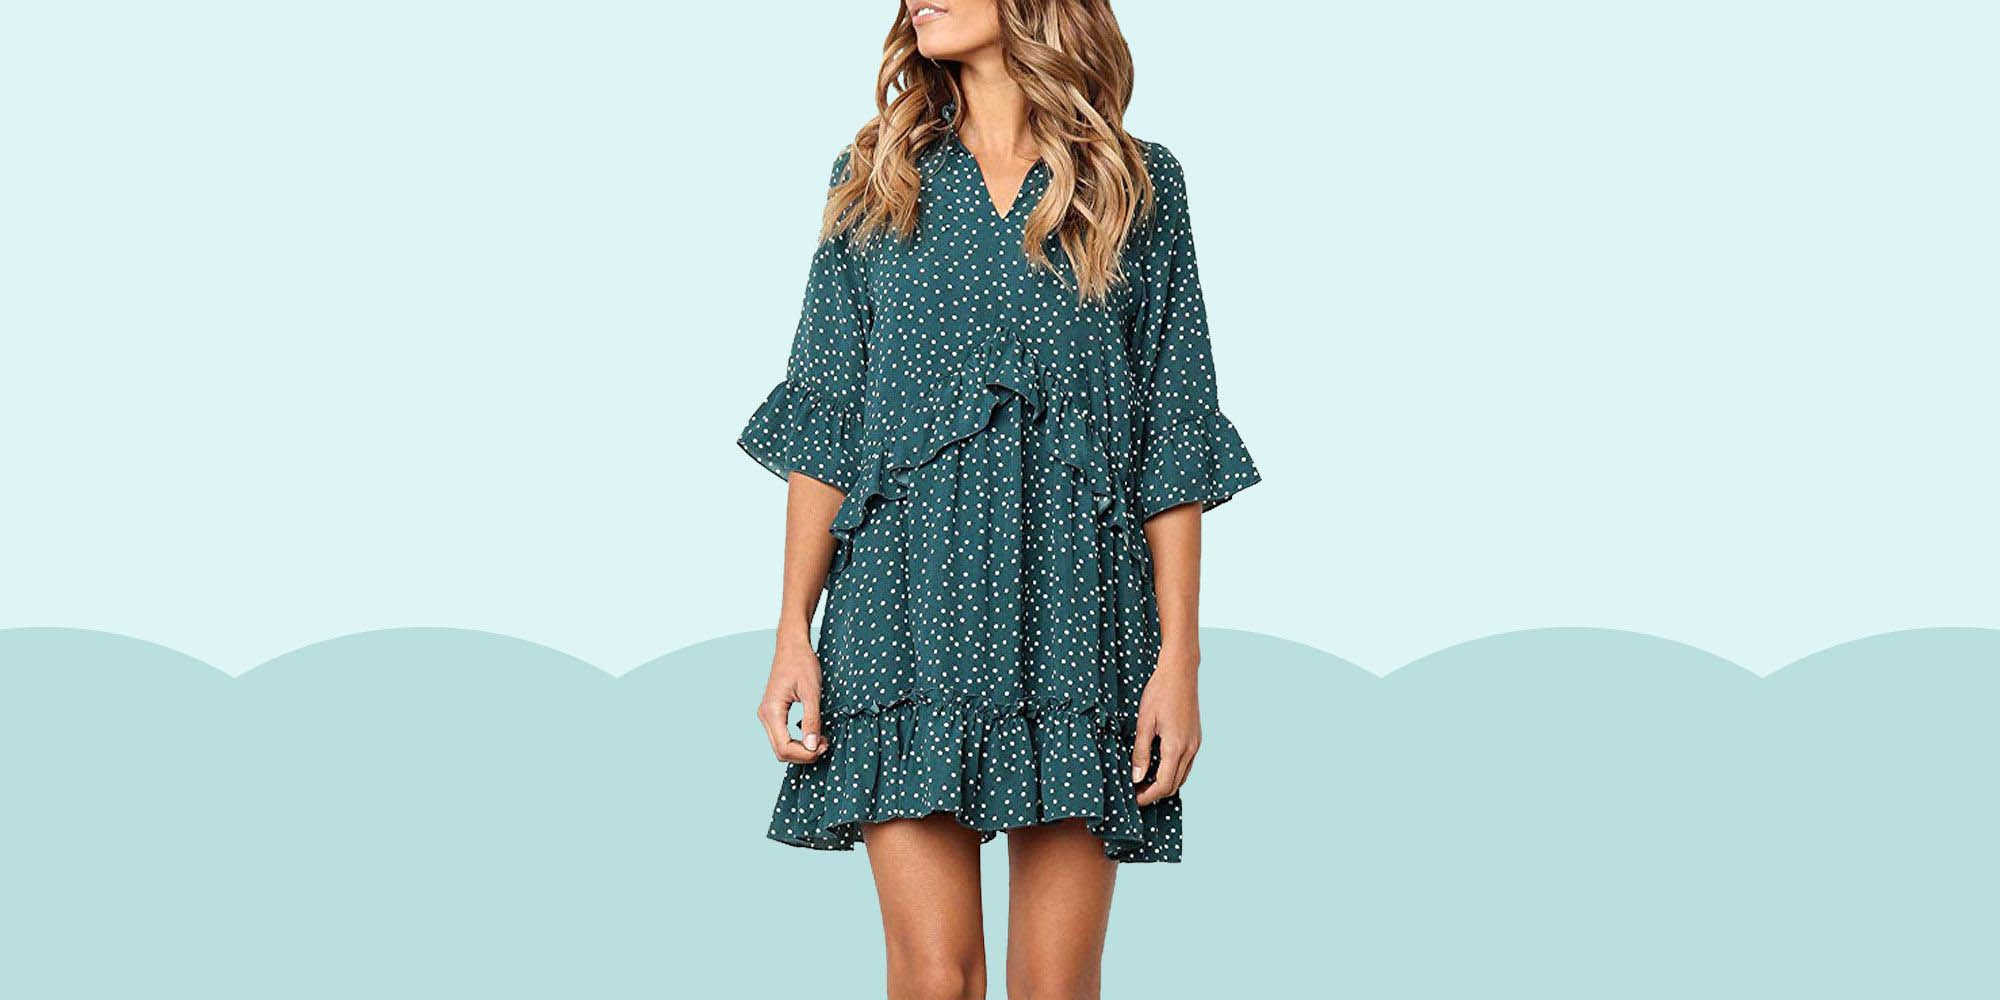 This $25 Dress on Amazon Is the Only One I Need on Any Vacation